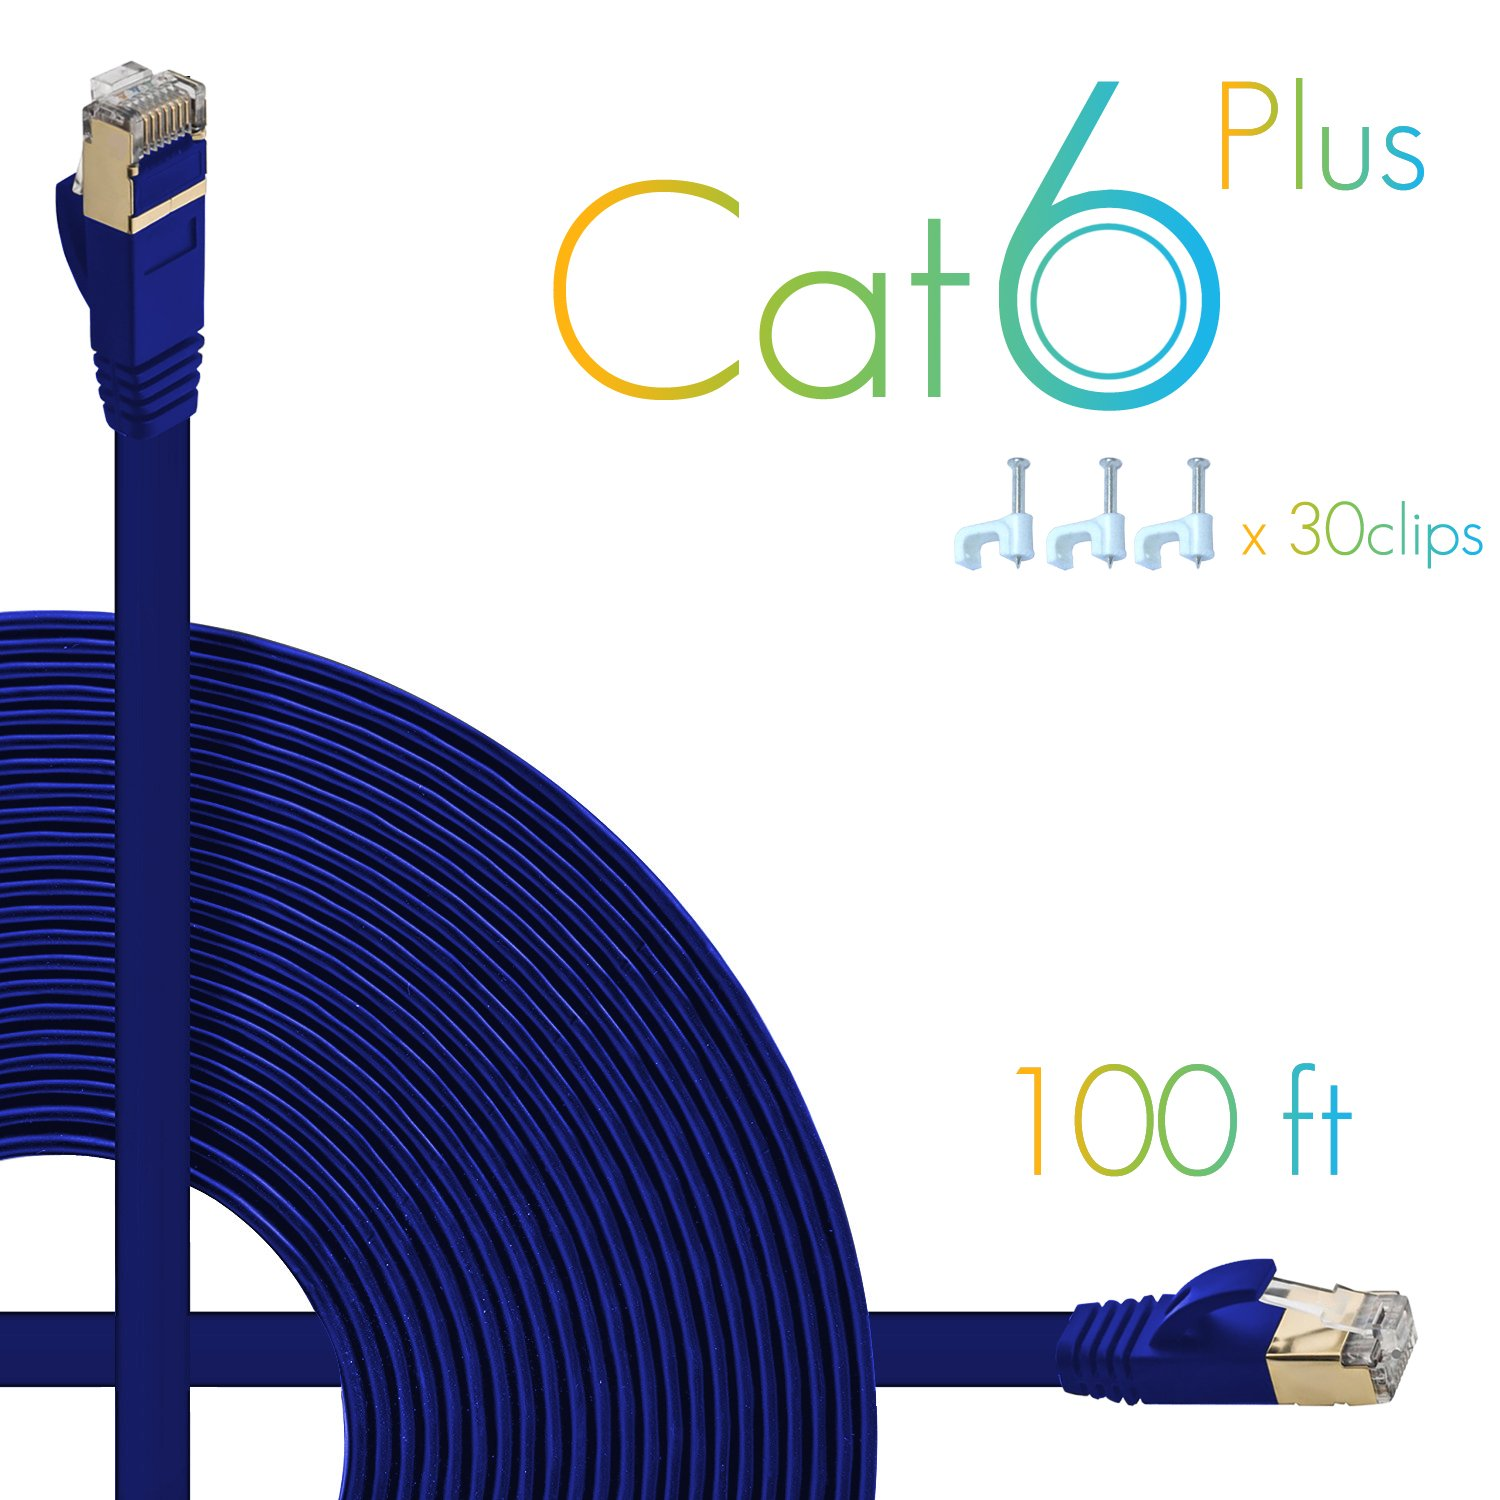 Aoforz Ethernet Cable Cat6 Plus 50ft Blue Flat High Network Cables Cat5e White Patch 32 Awg 35 Foot Speed Internet With Clips Computer Snagless Rj45